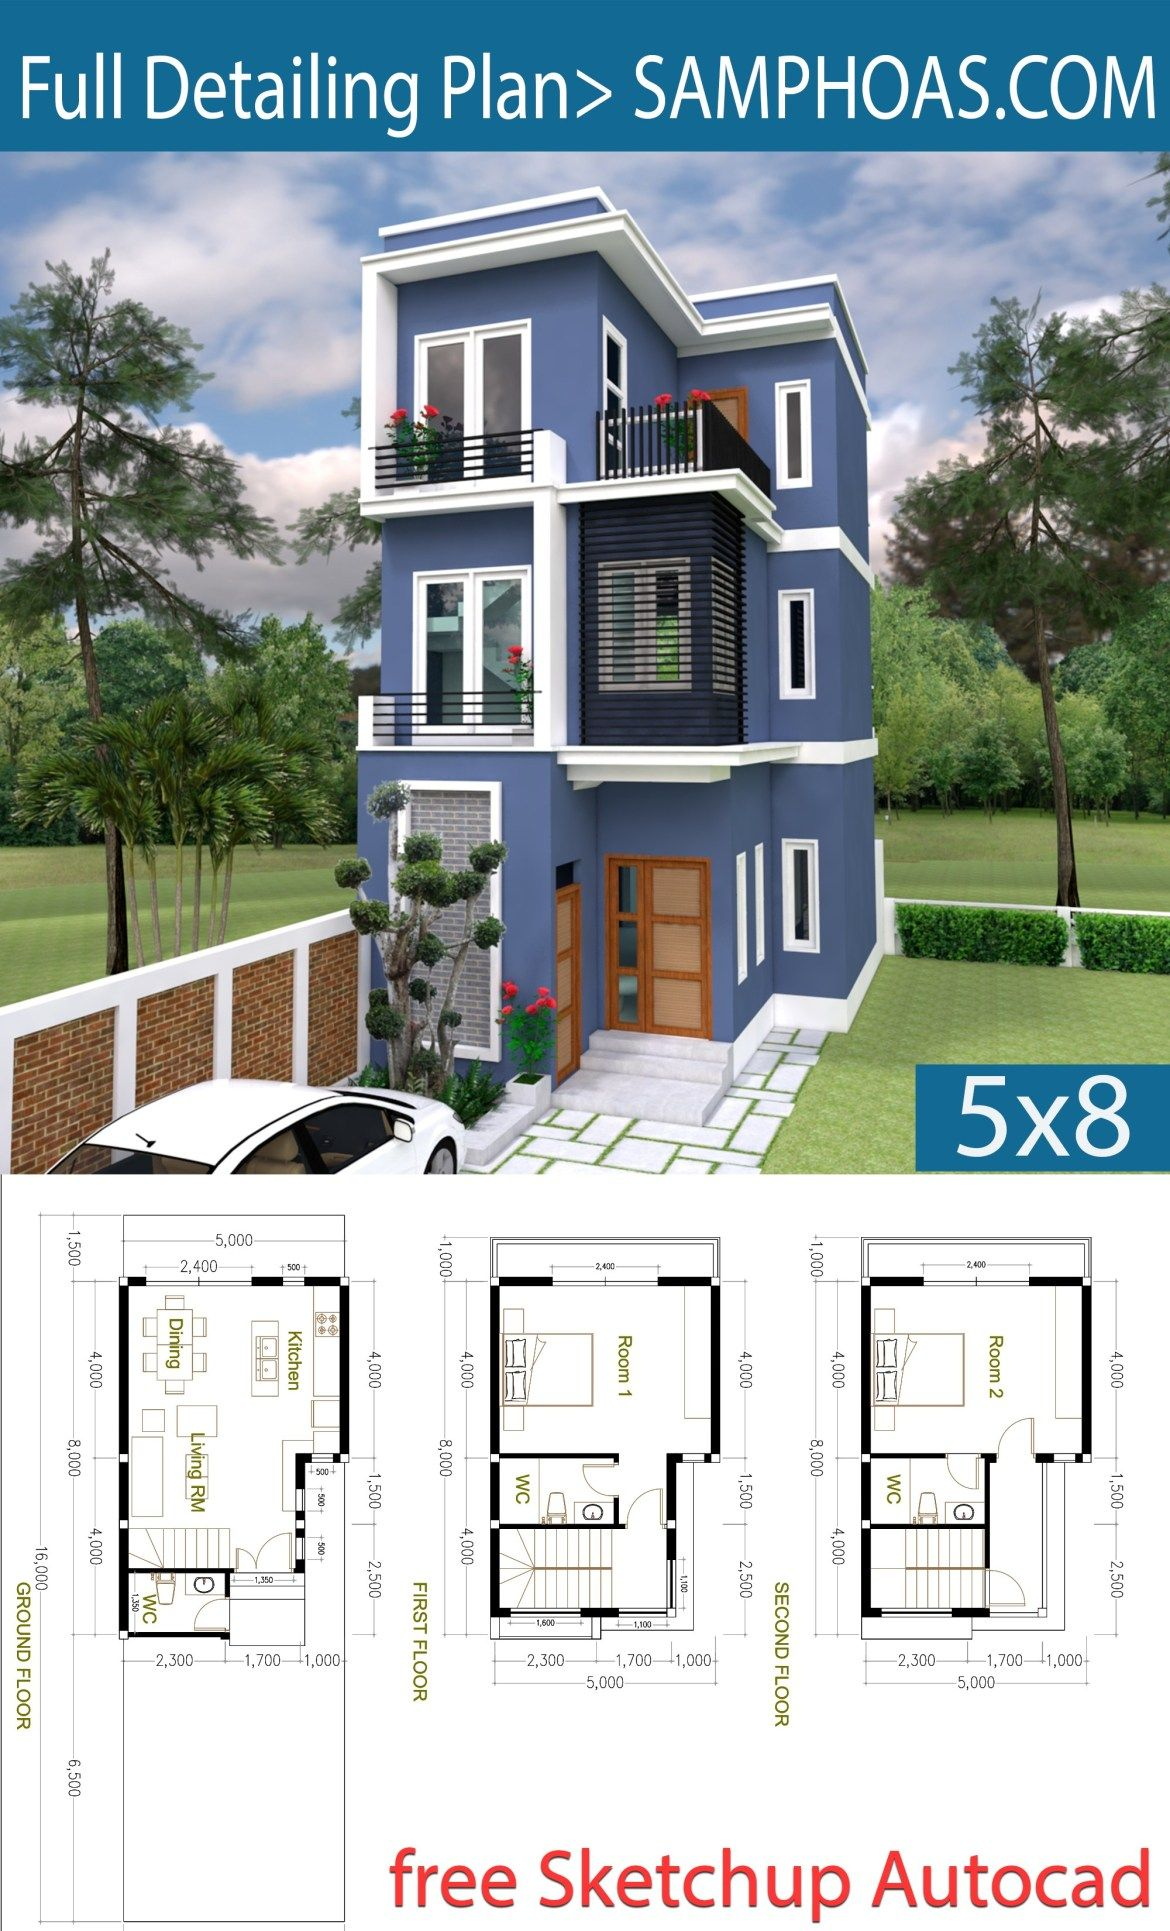 2 Bedroom Tiny Home Plan 5x8m Samphoas Plansearch Model House Plan House Front Design Sims House Plans